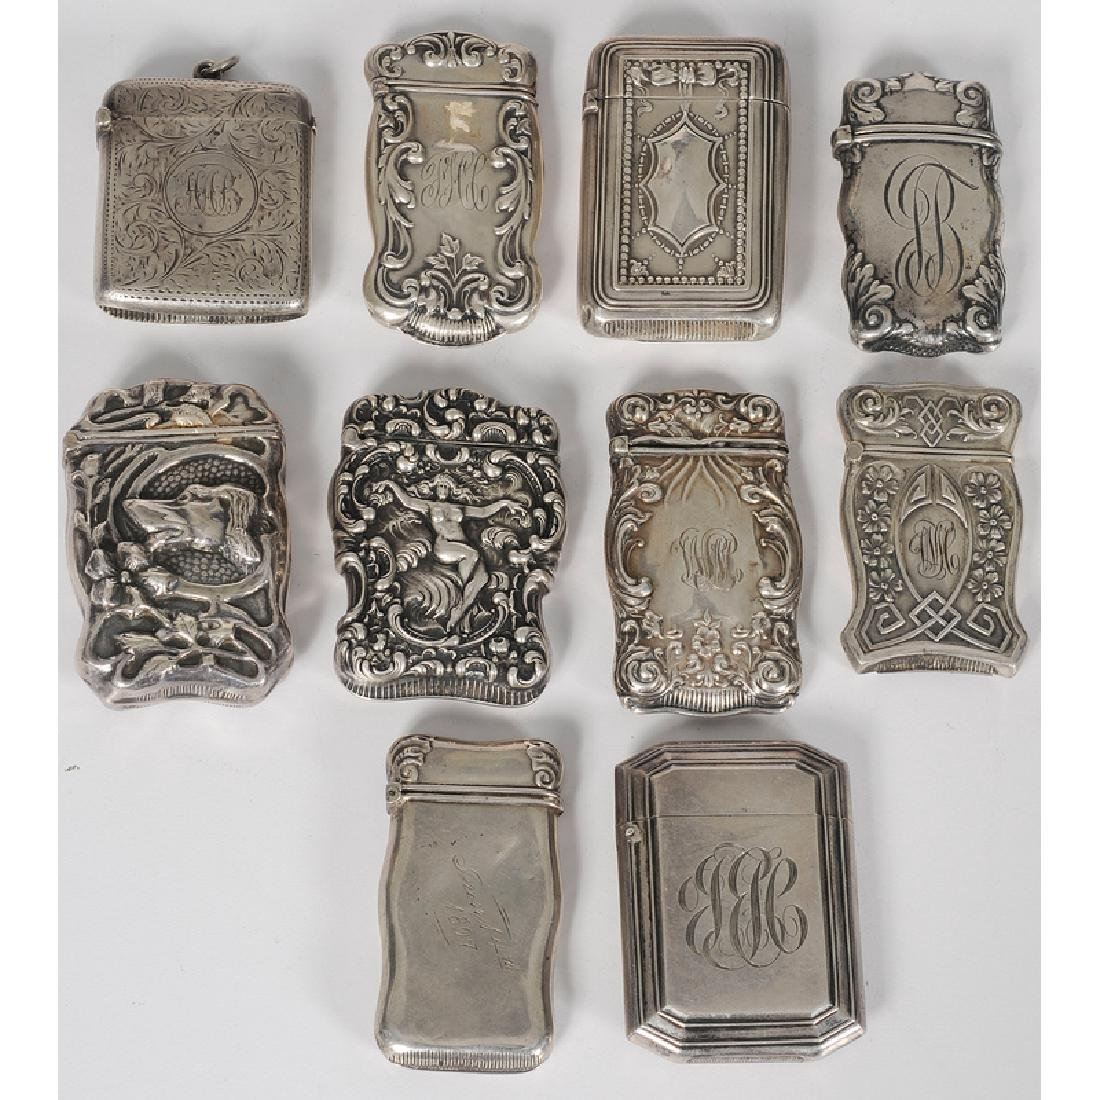 Unger Bros. and Other Sterling Silver Match Safes